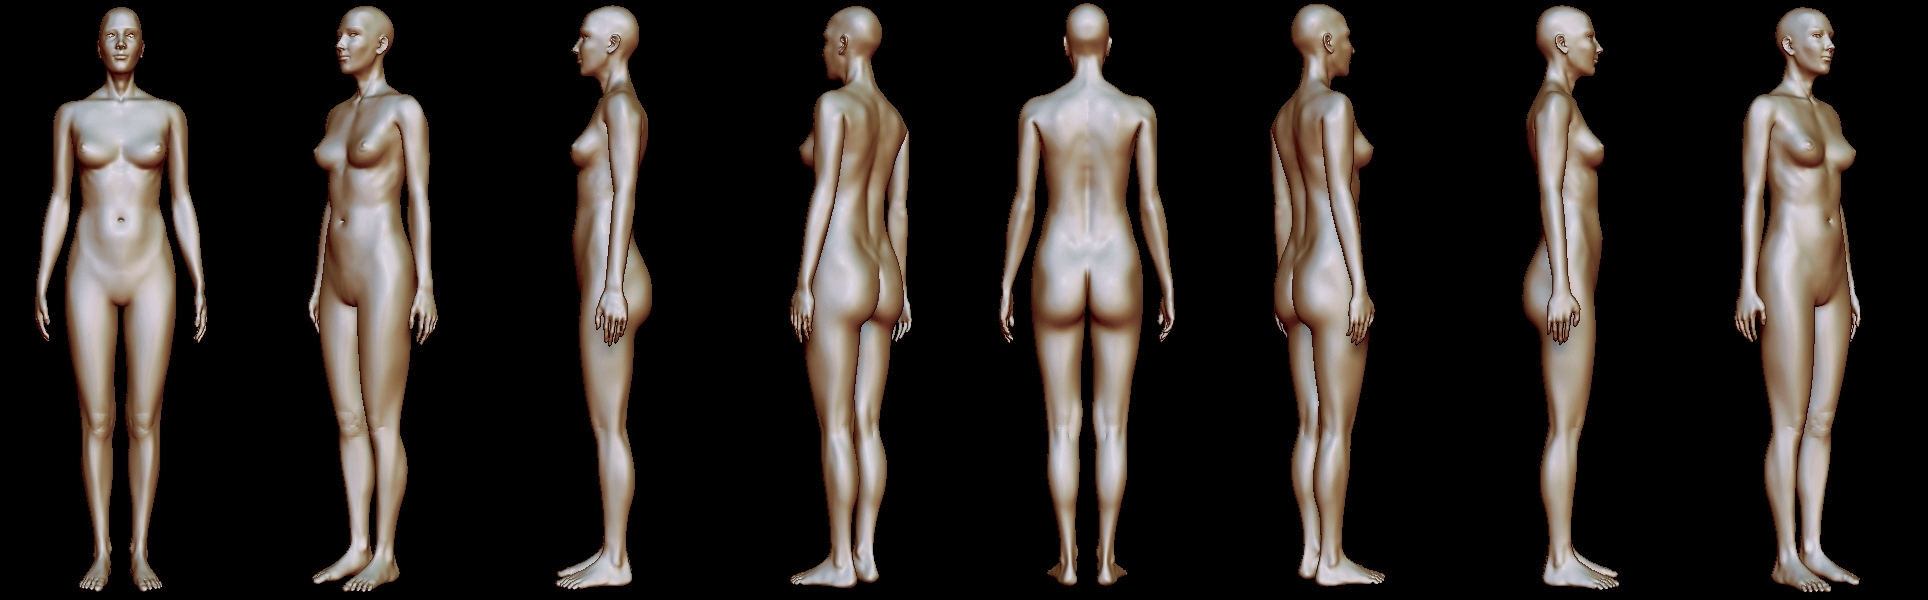 Woman Body Anatomy By Gadamm 3docean